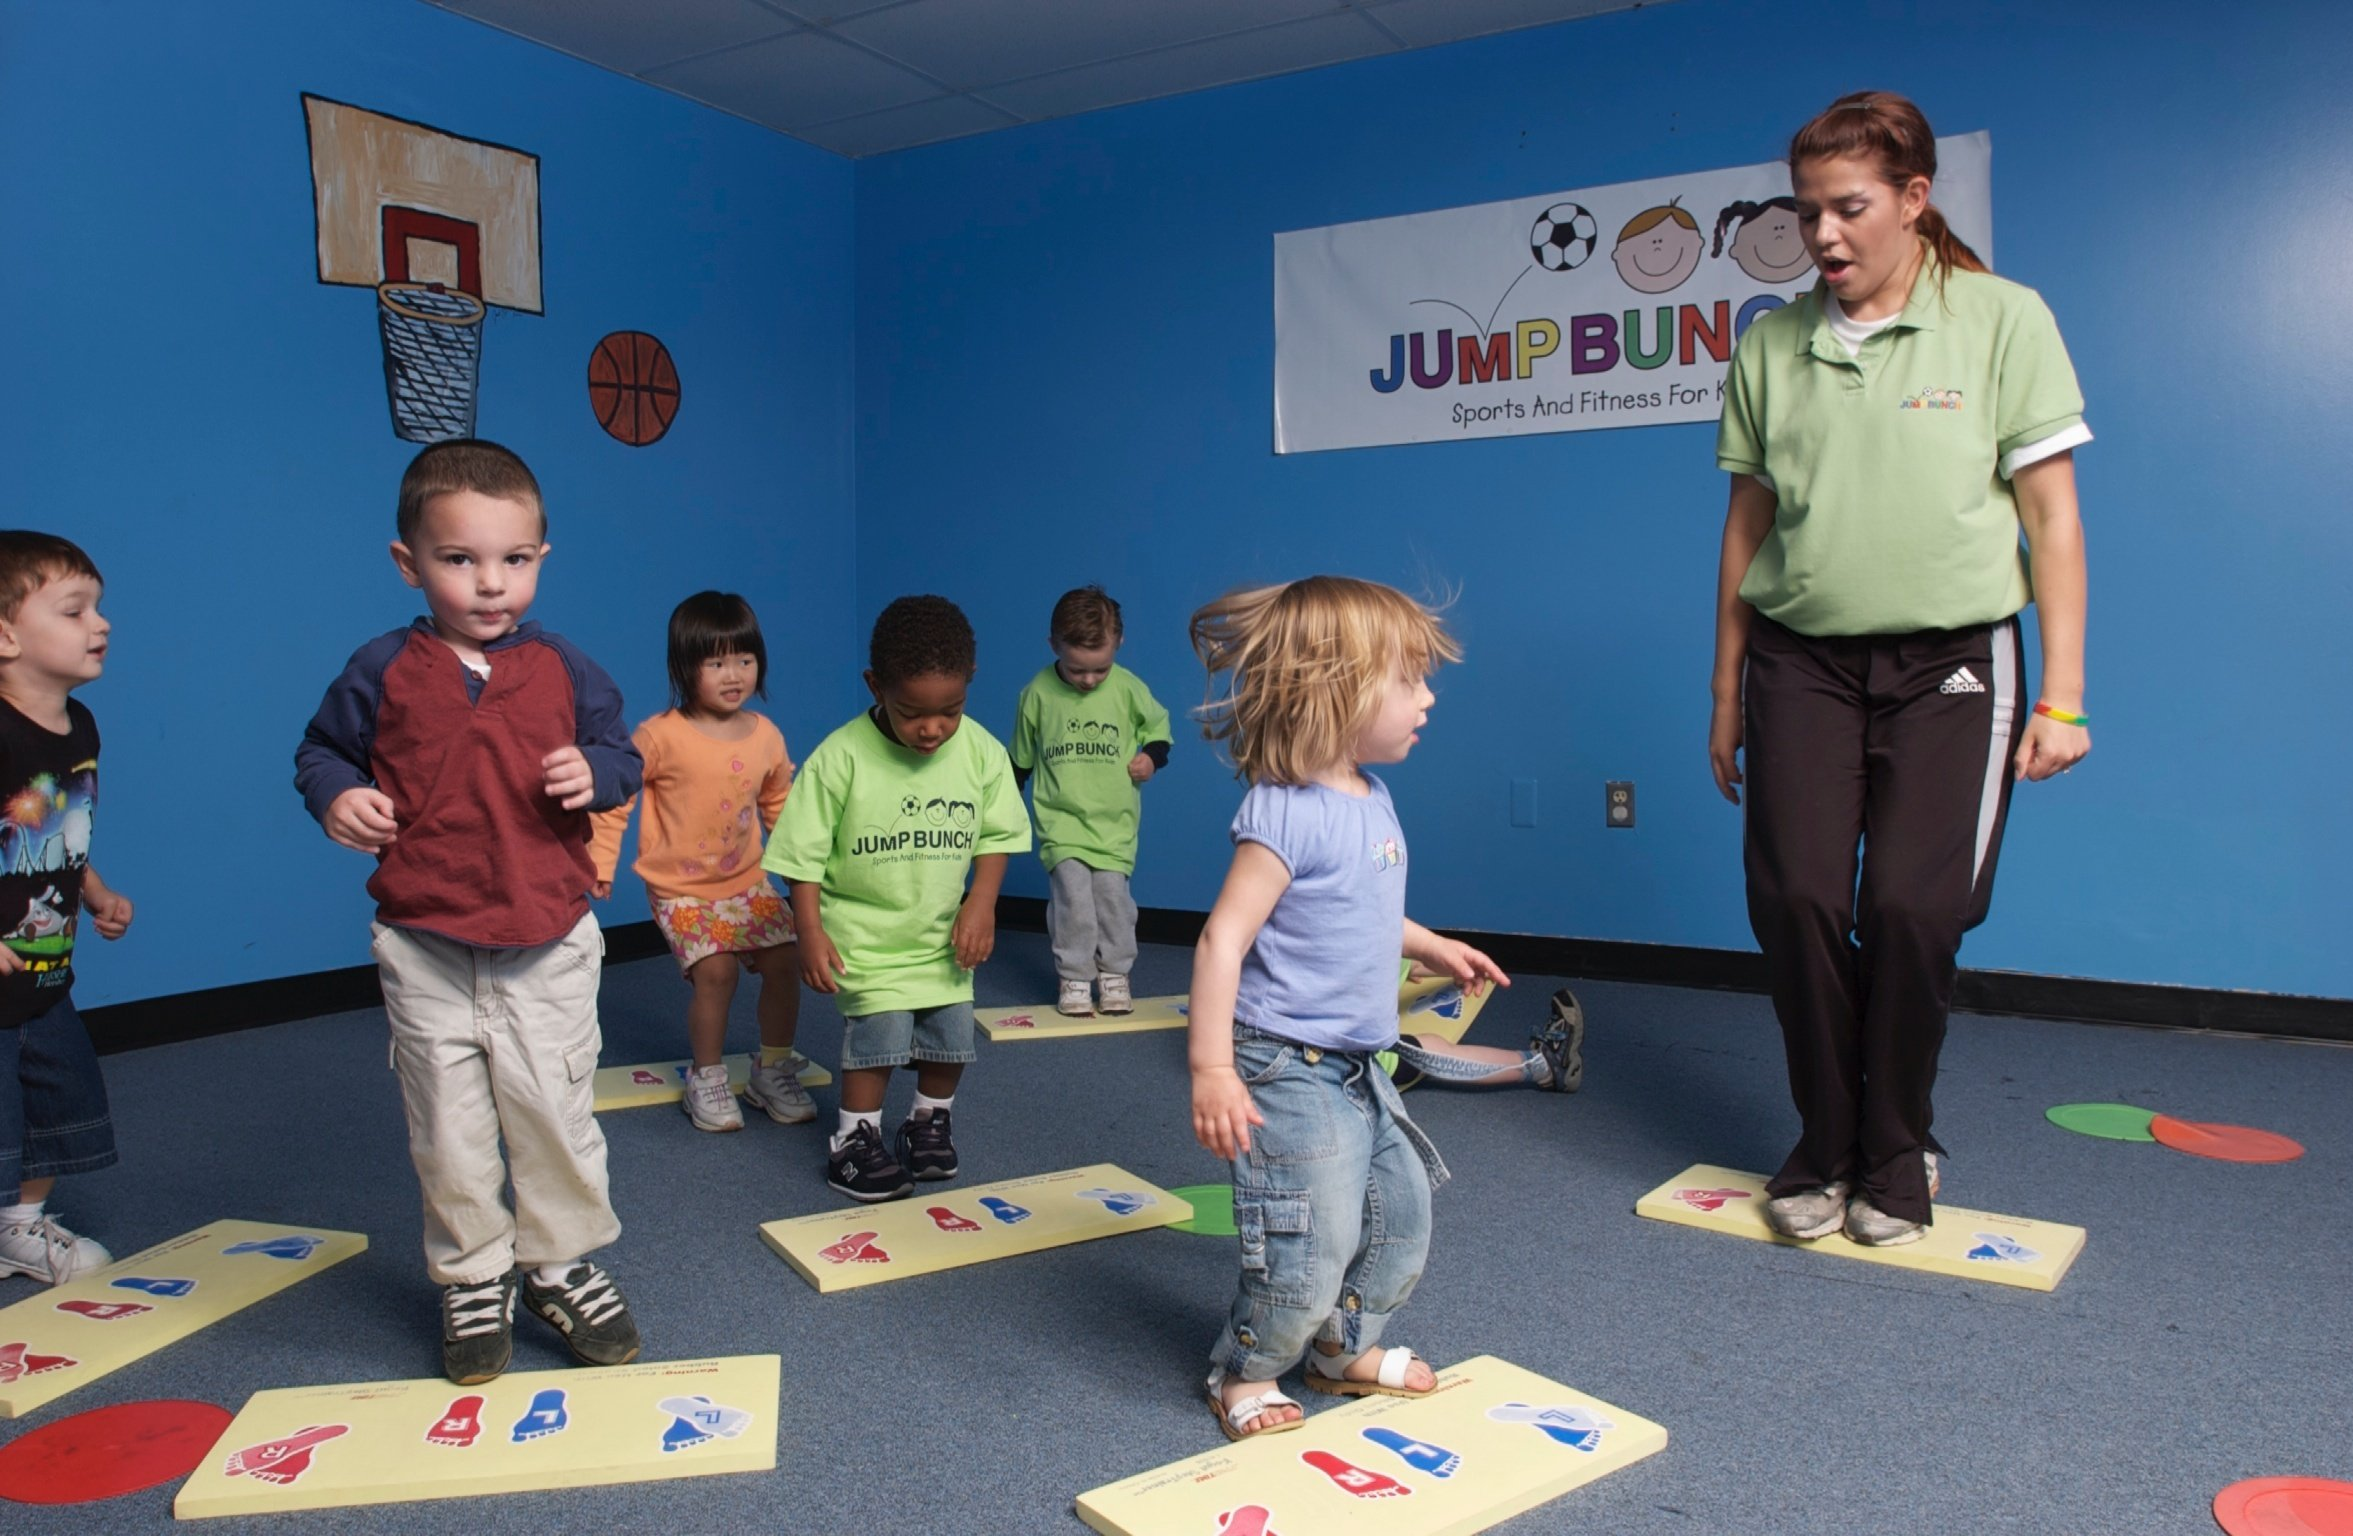 JumpBunch Northern Delaware | A Friendly Introduction to Sports and Fitness!